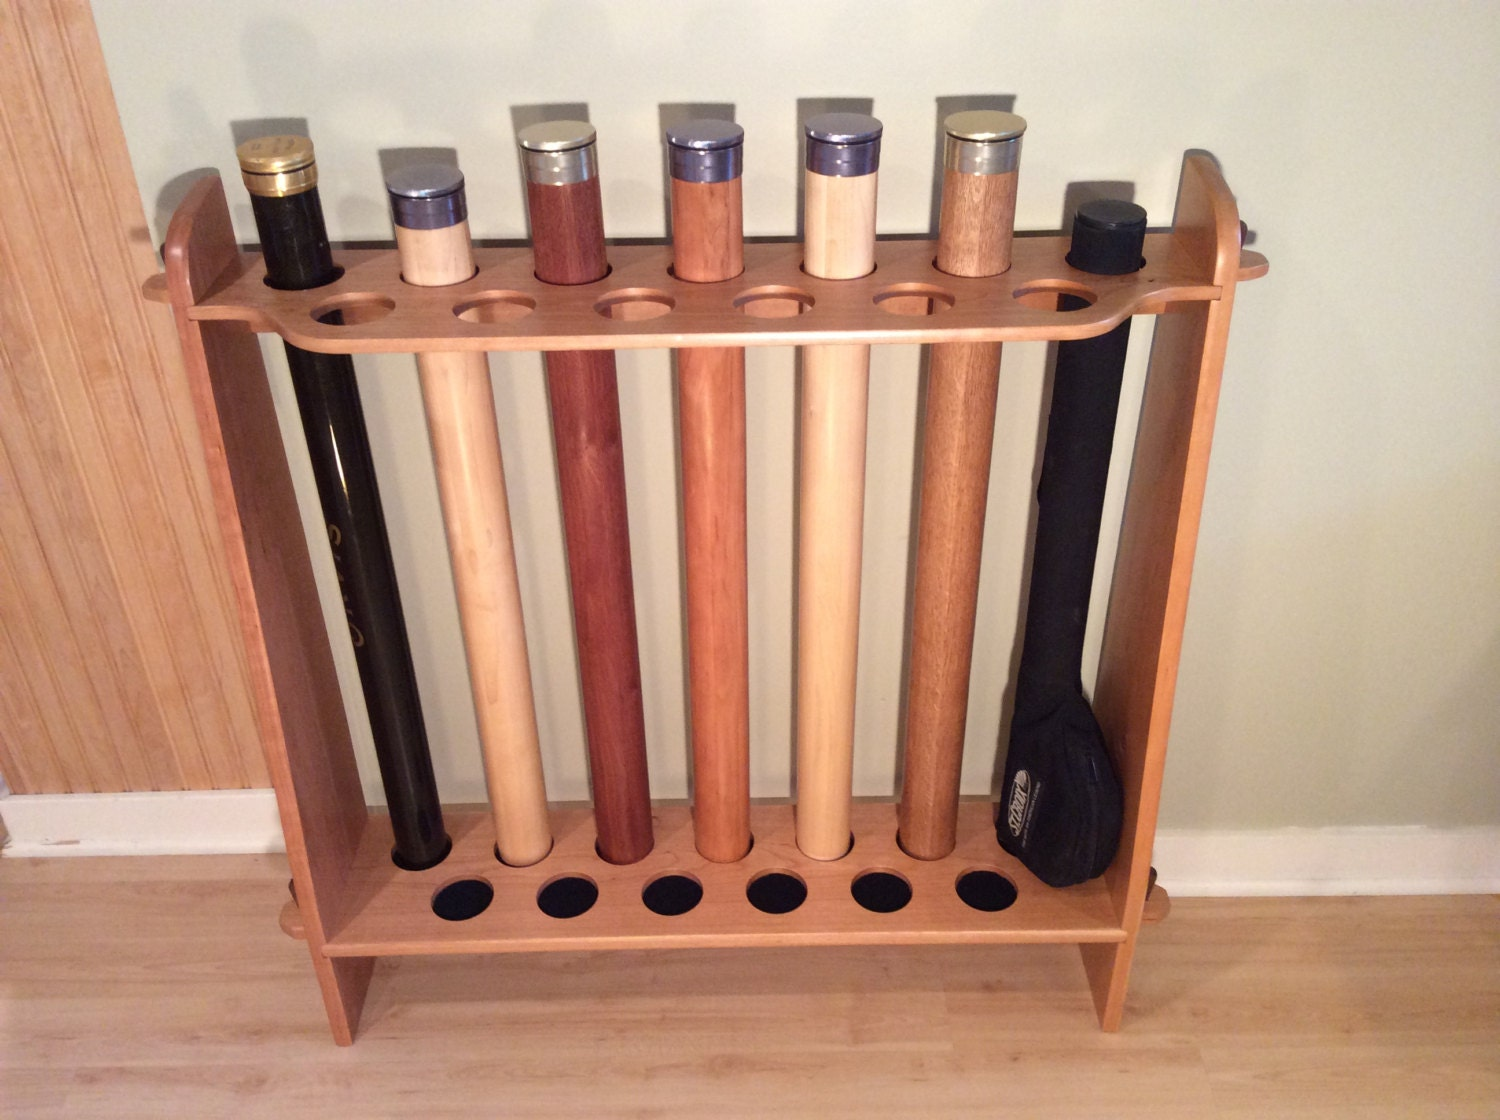 Fly rod tube storage rack 13 position for Fly fishing rod holder